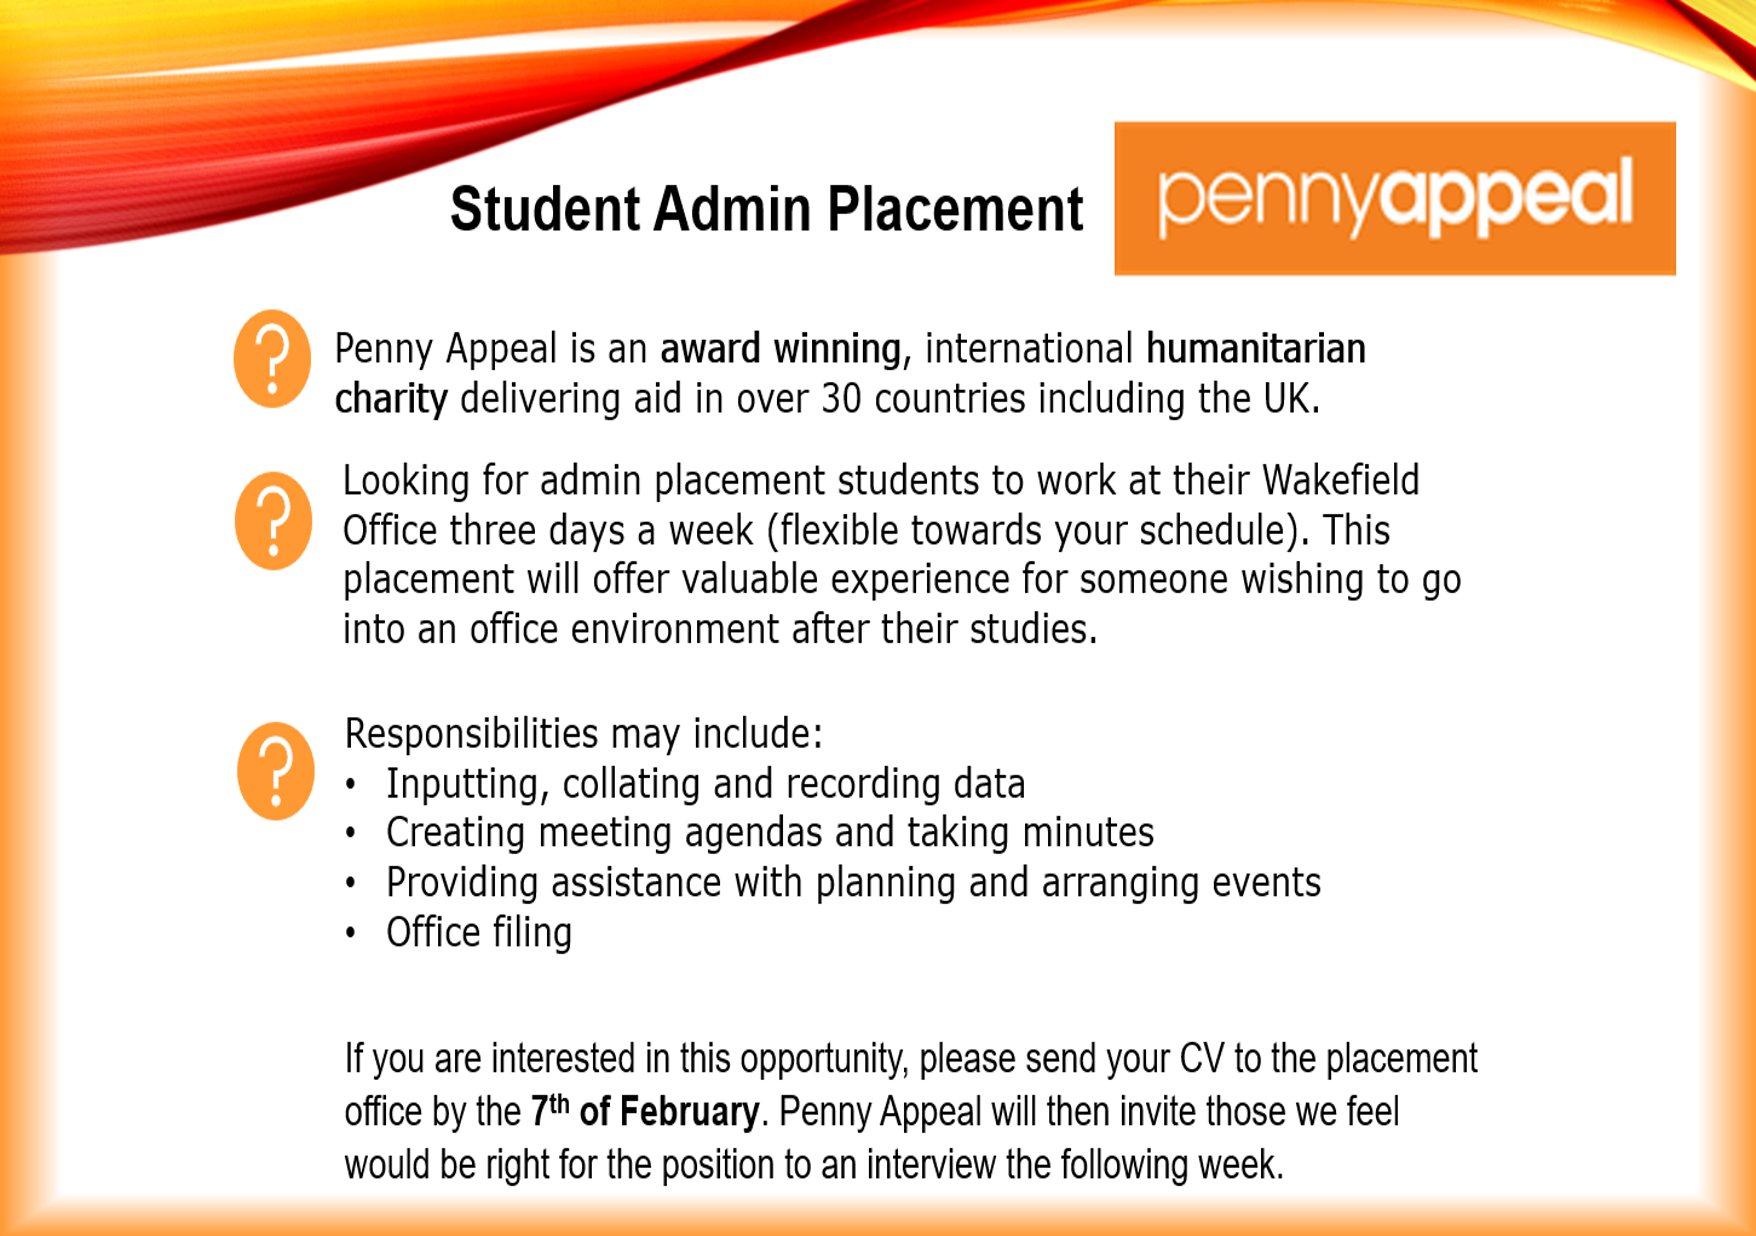 Penny Appeal Work Placement